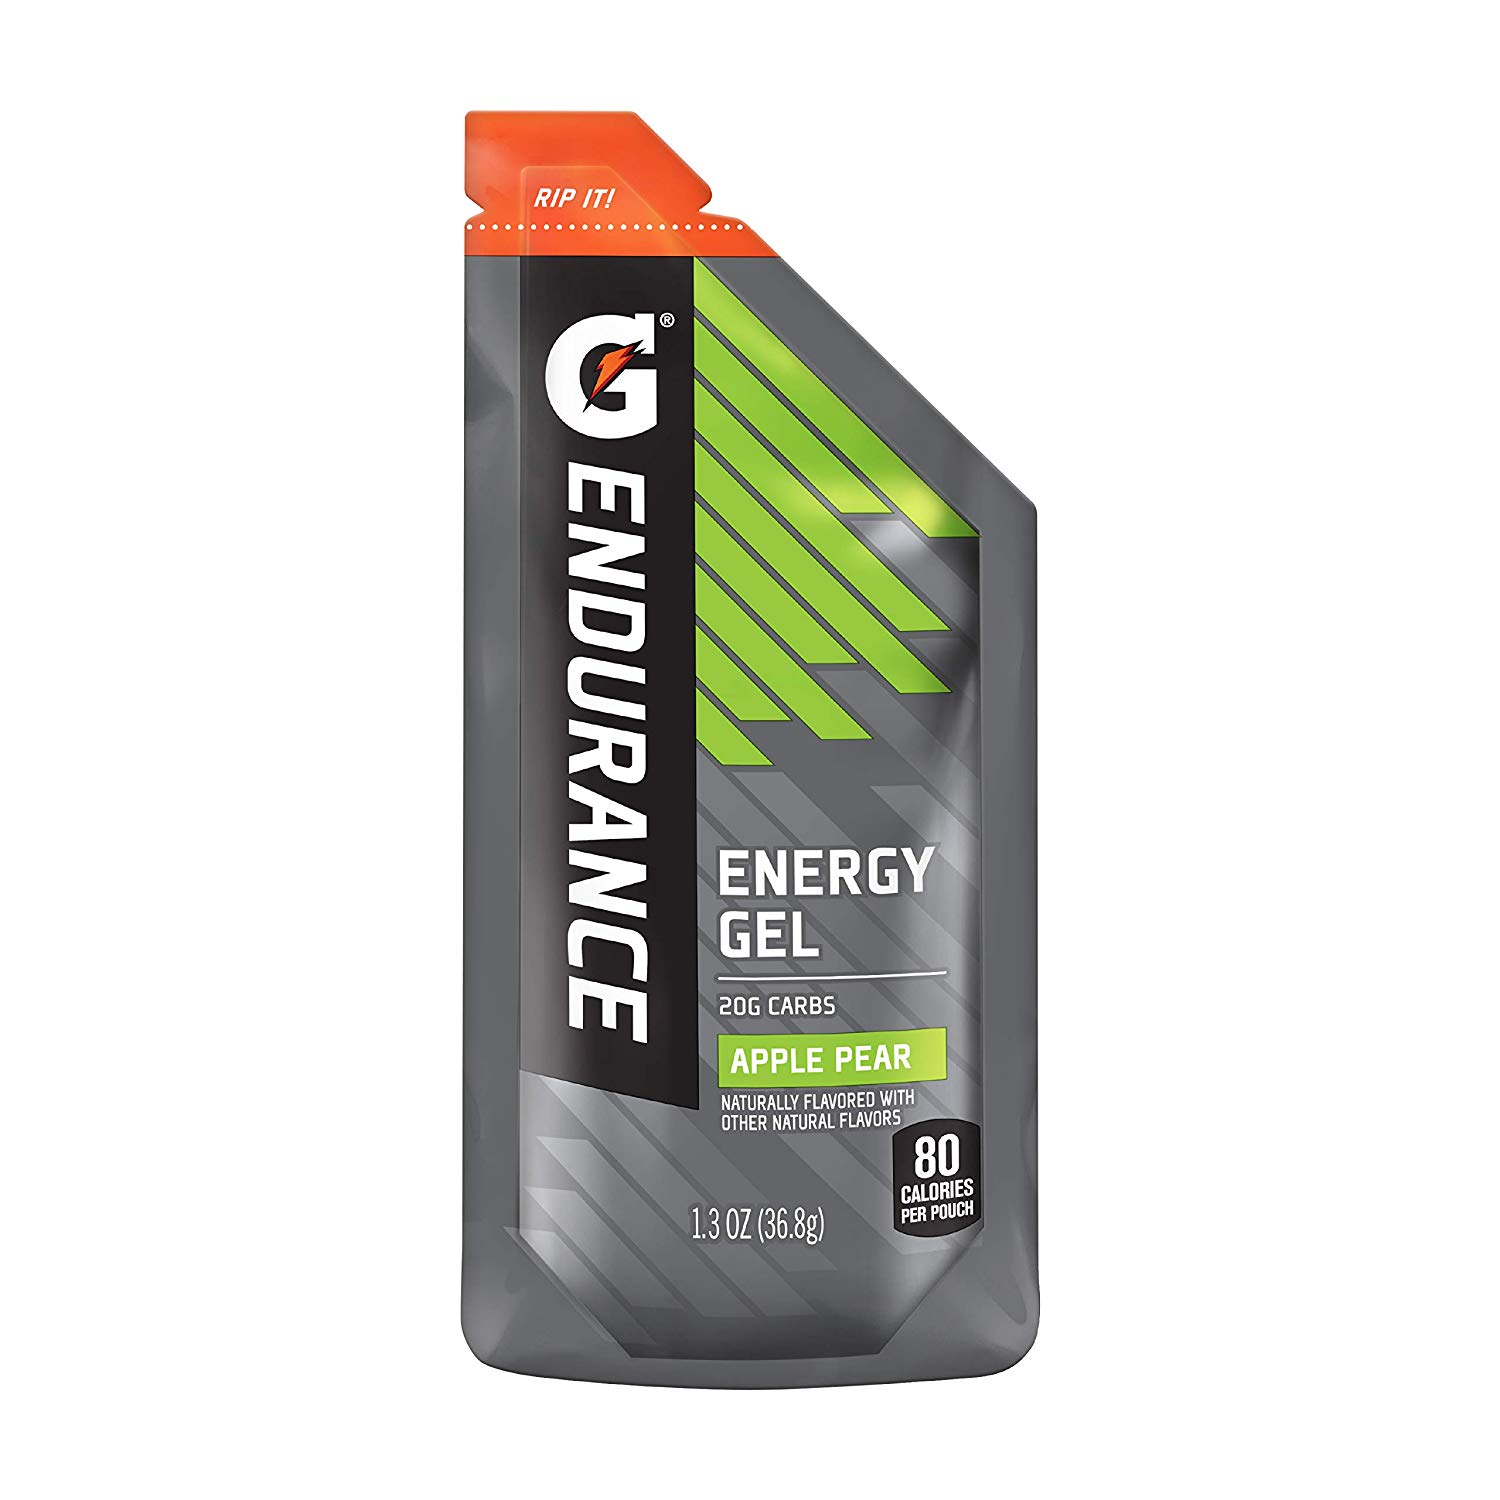 Gatorade Endurance Energy Gel apple pear